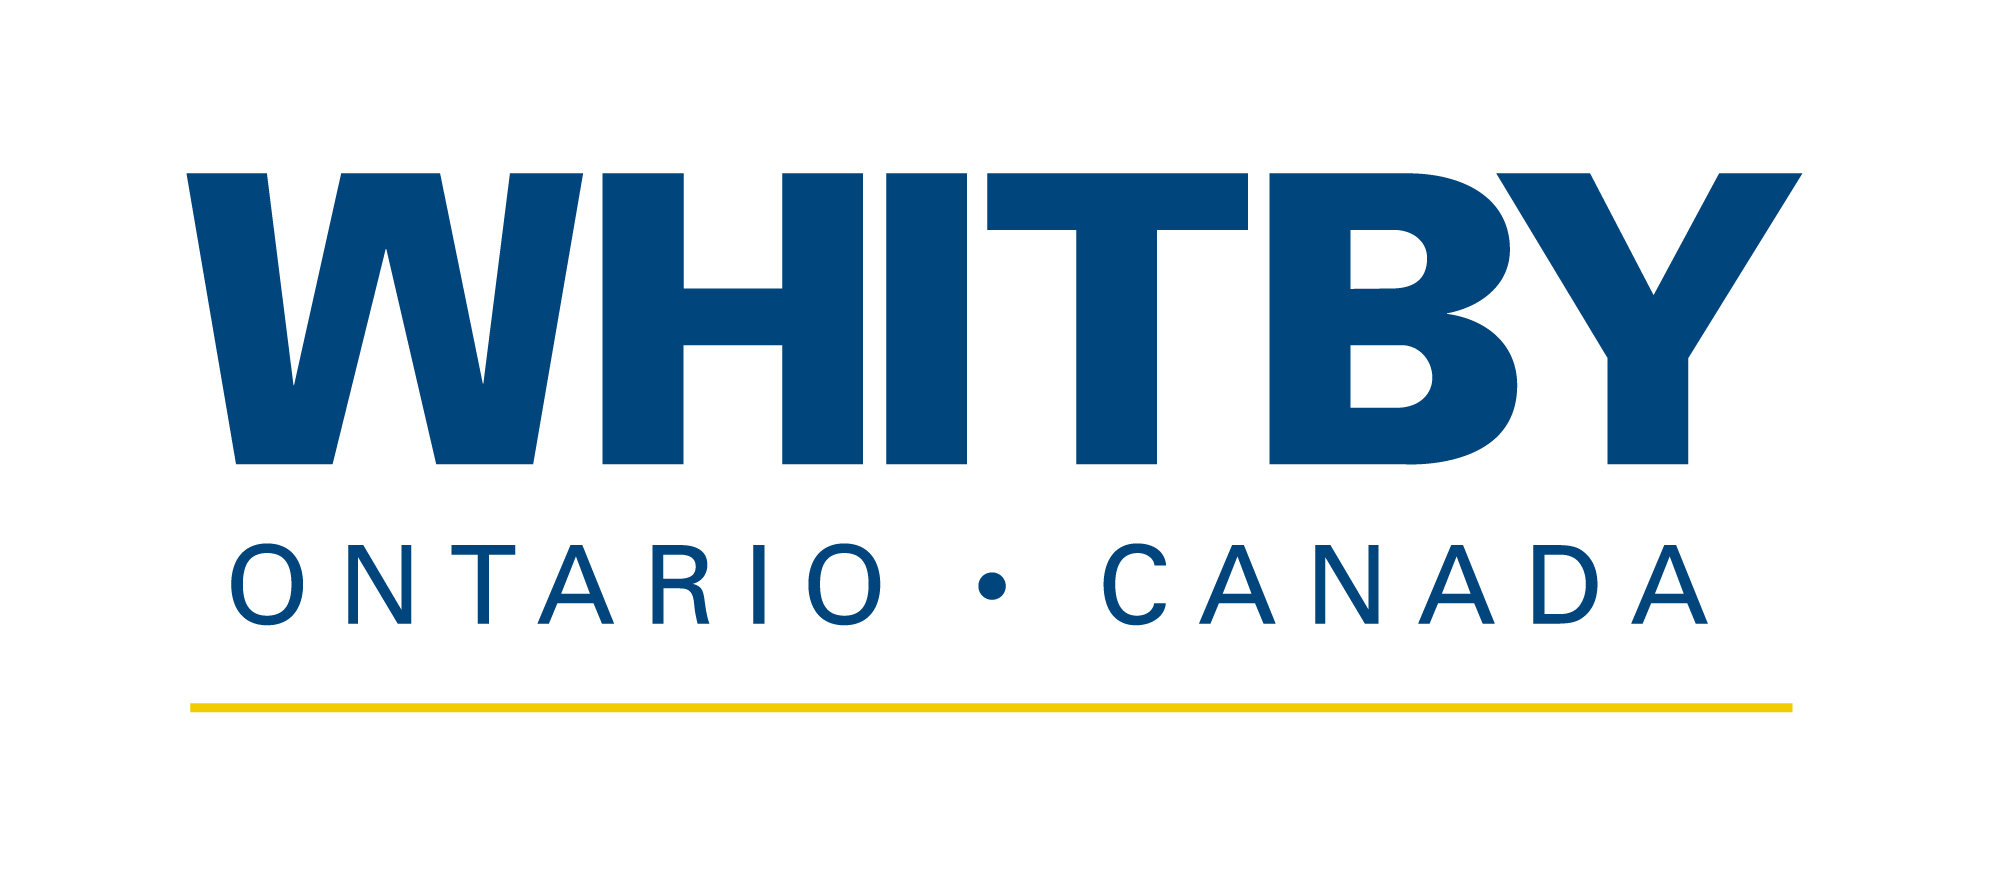 Logo Image for Ville de Whitby